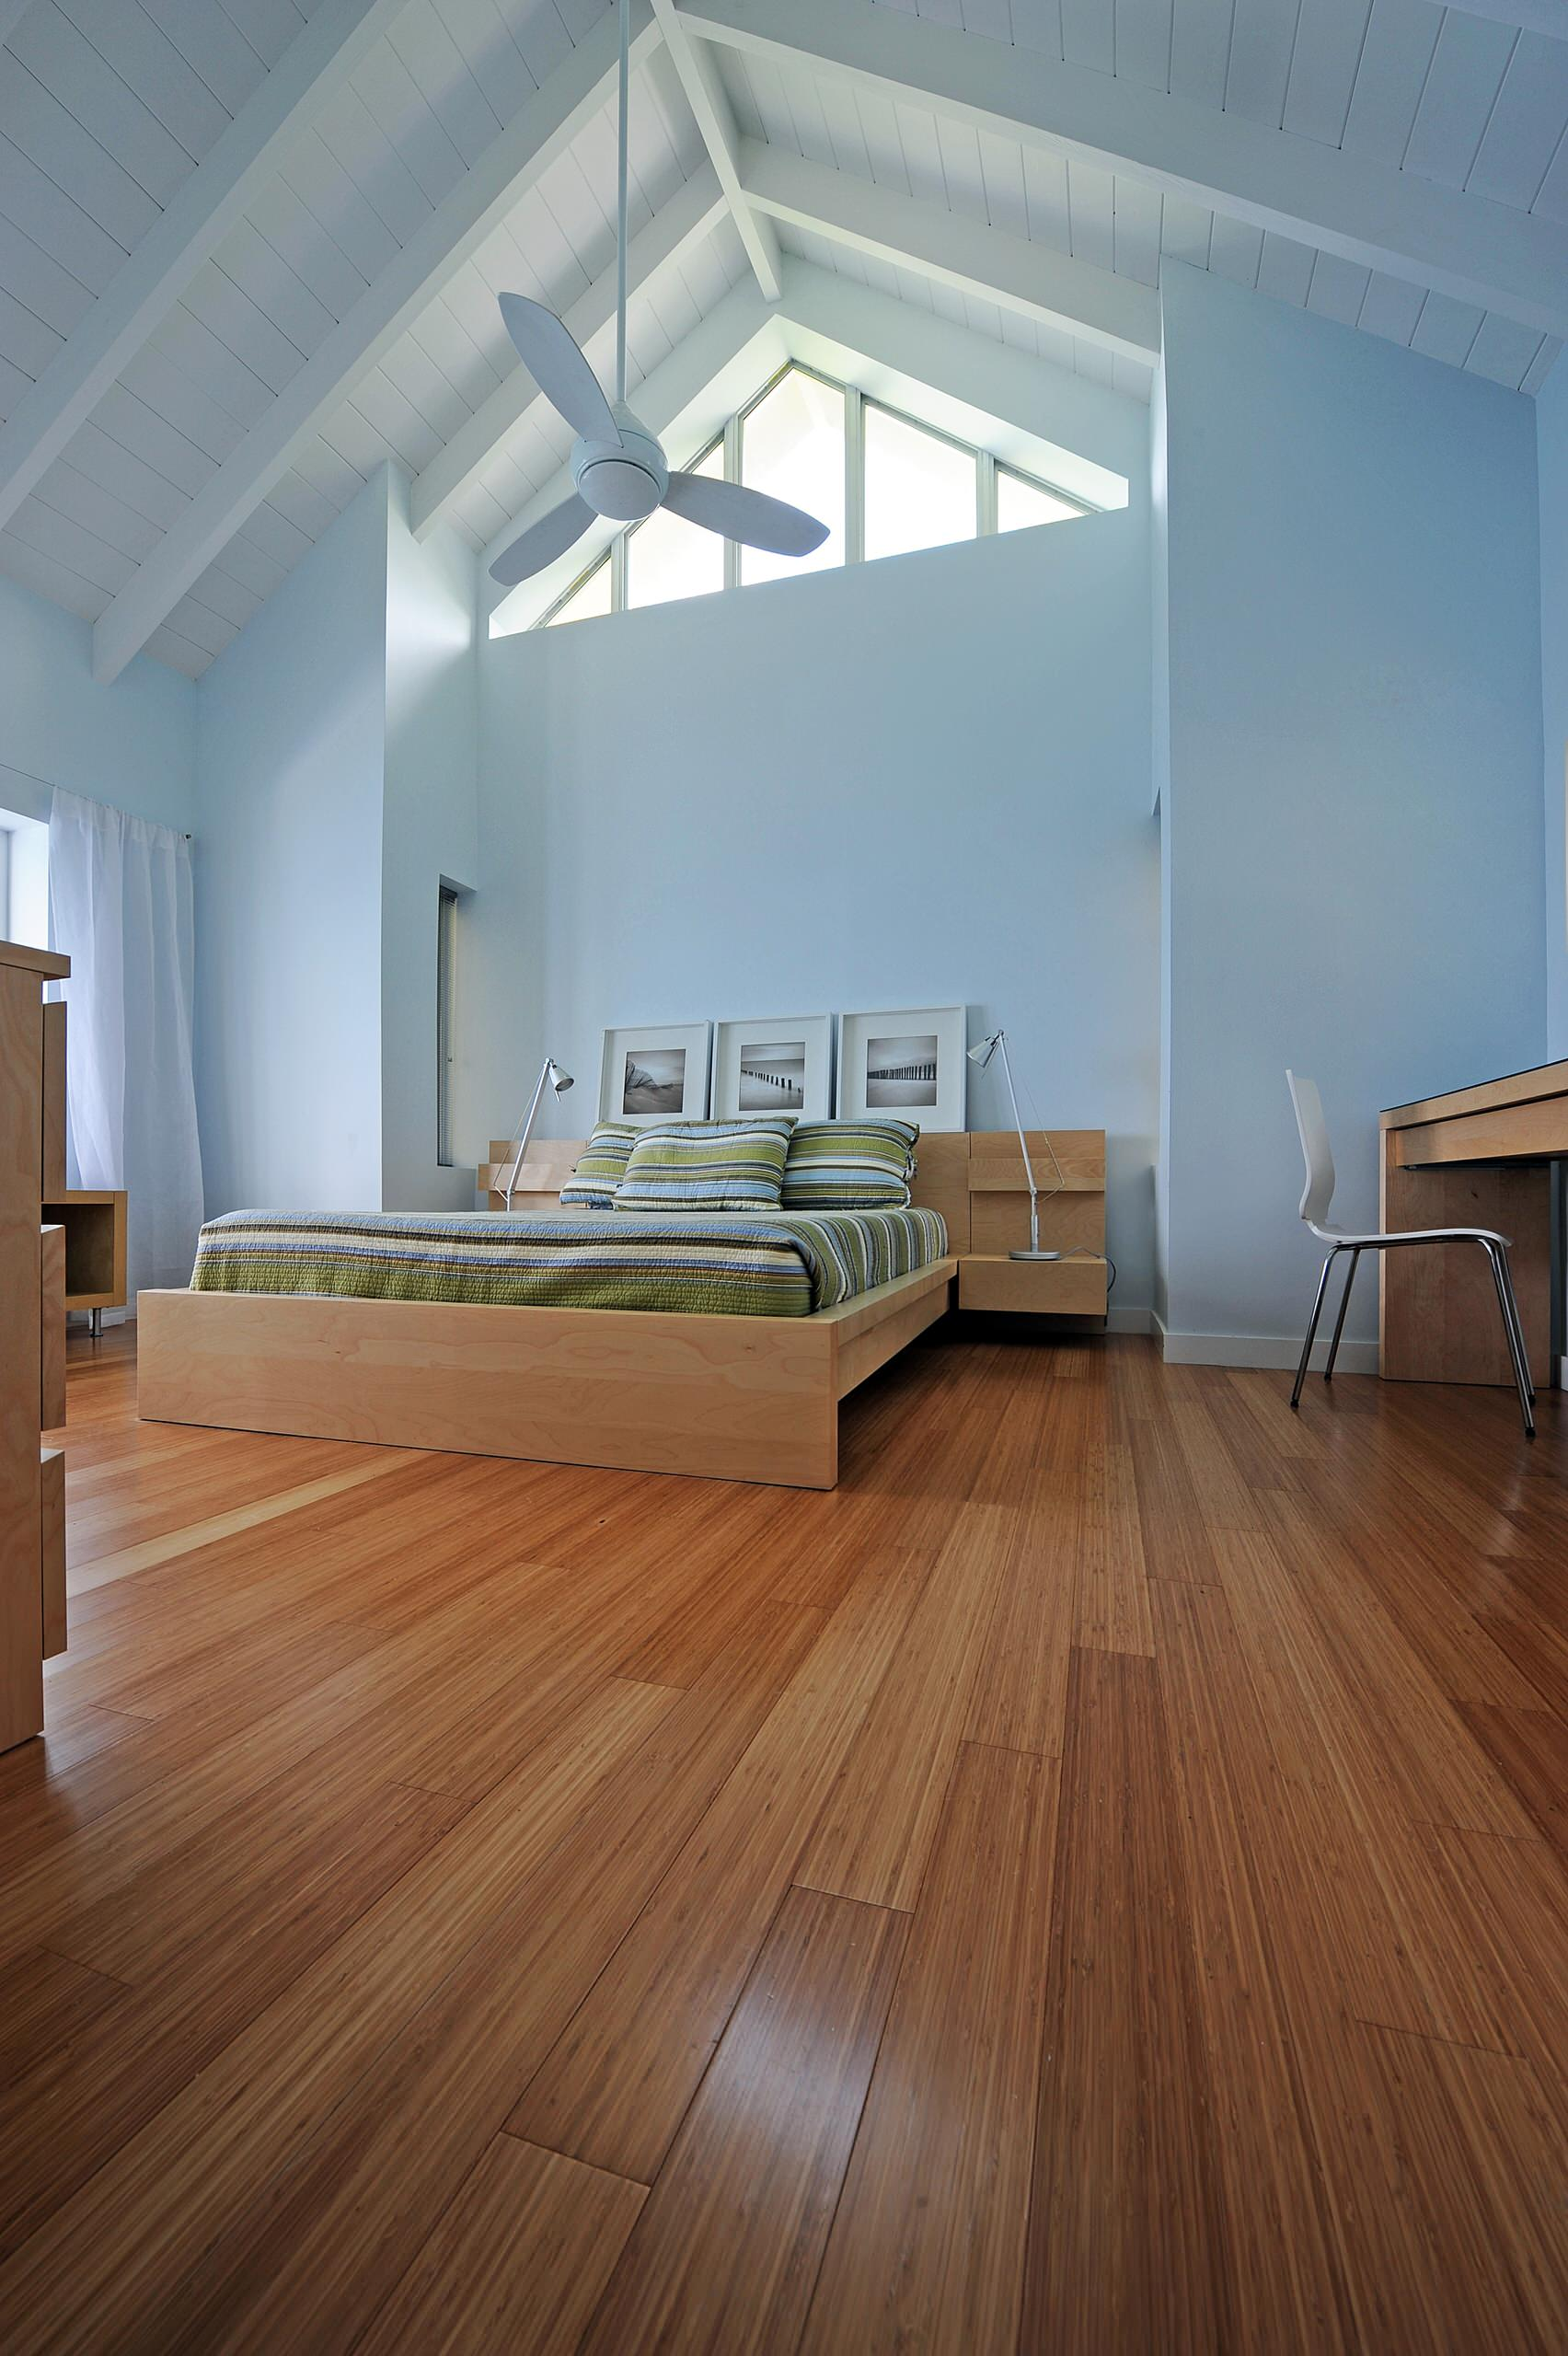 10 Reasons to Love Bamboo Flooring